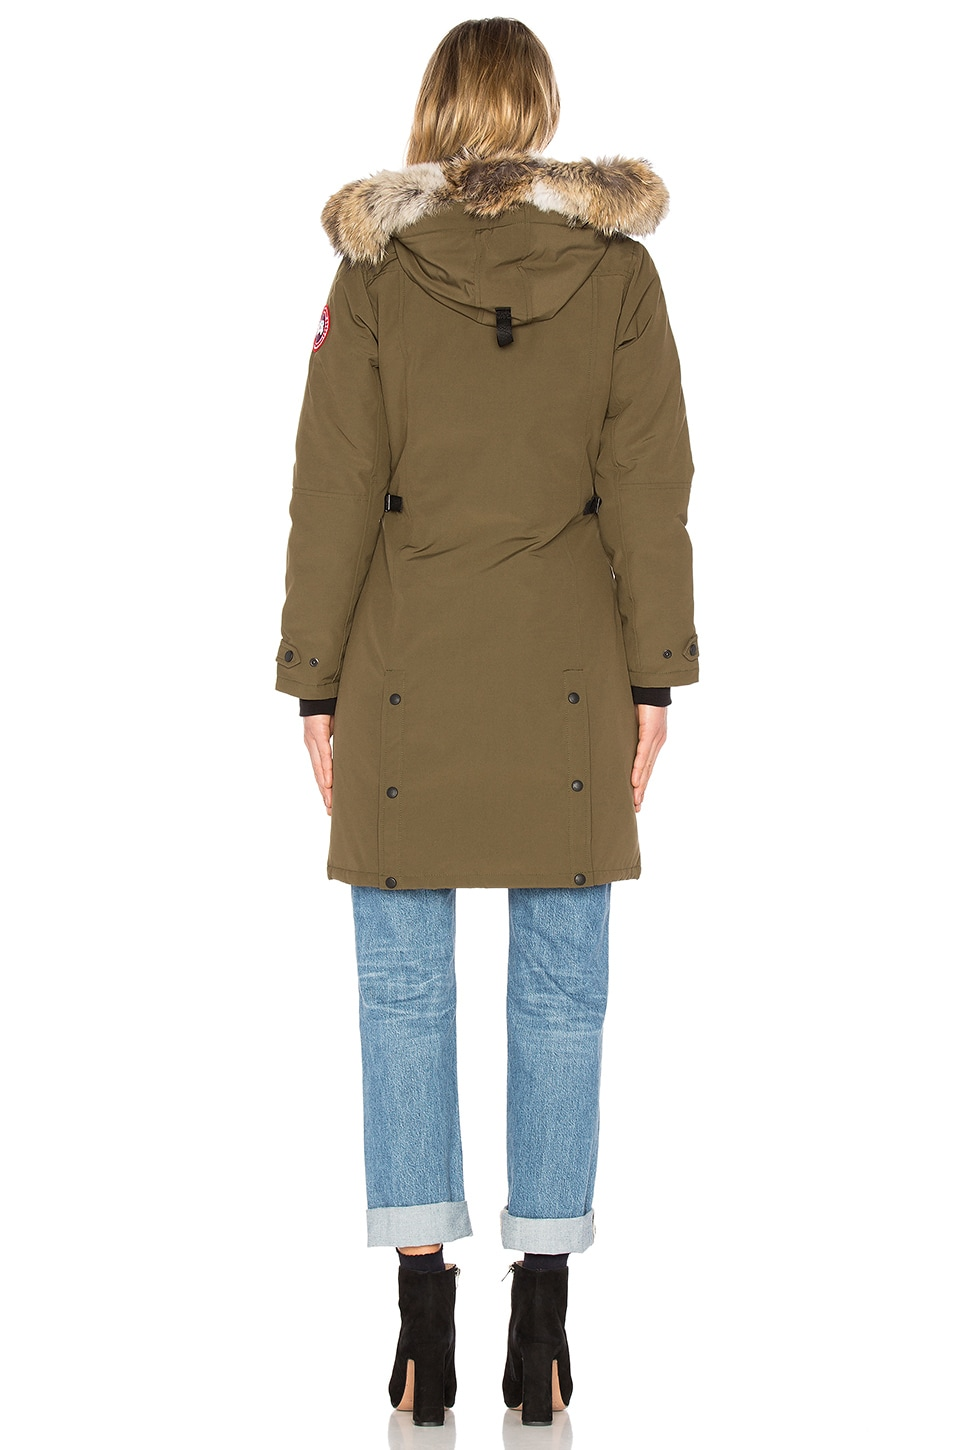 Canada Goose womens sale authentic - Canada Goose Kensington Parka with Coyote Fur Trim in Military ...